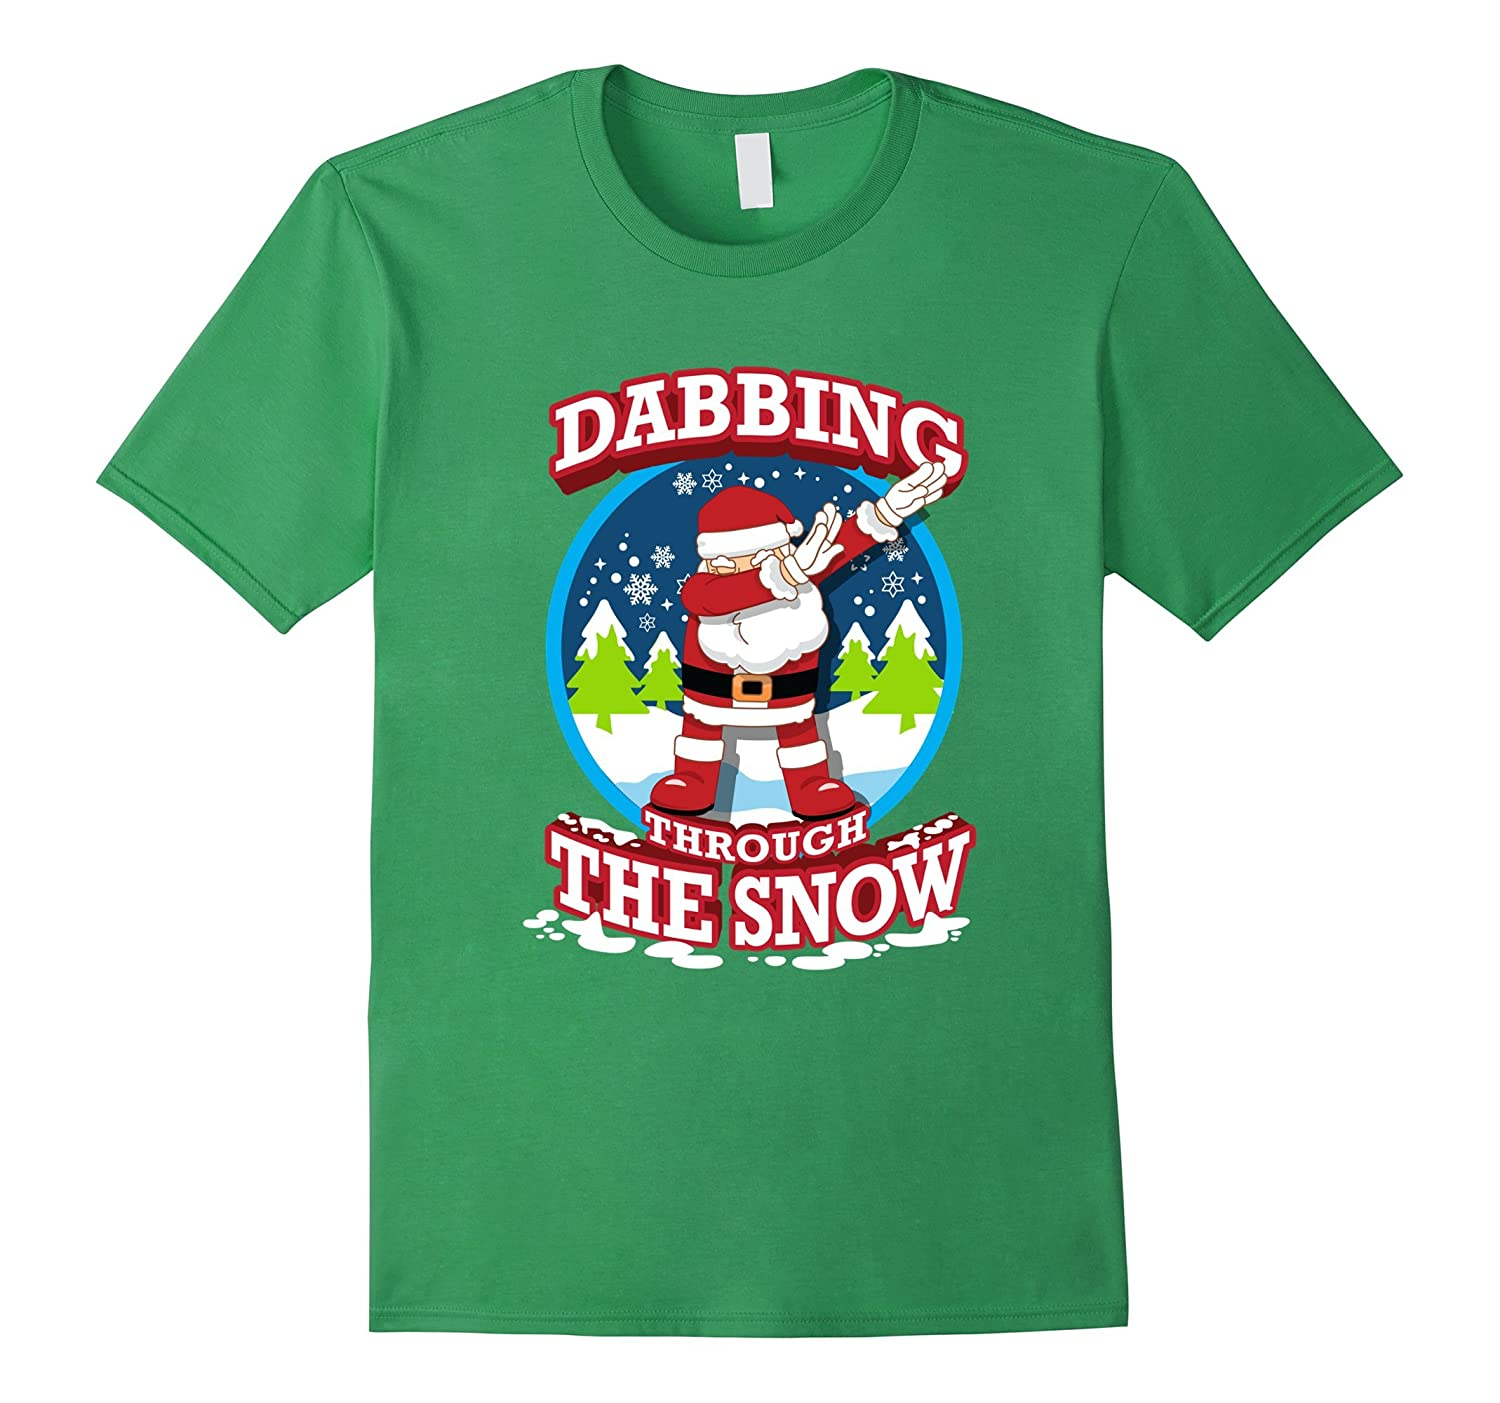 Christmas Pun.Dabbing Through The Snow Shirt Funny Christmas Pun T Shirt Anz